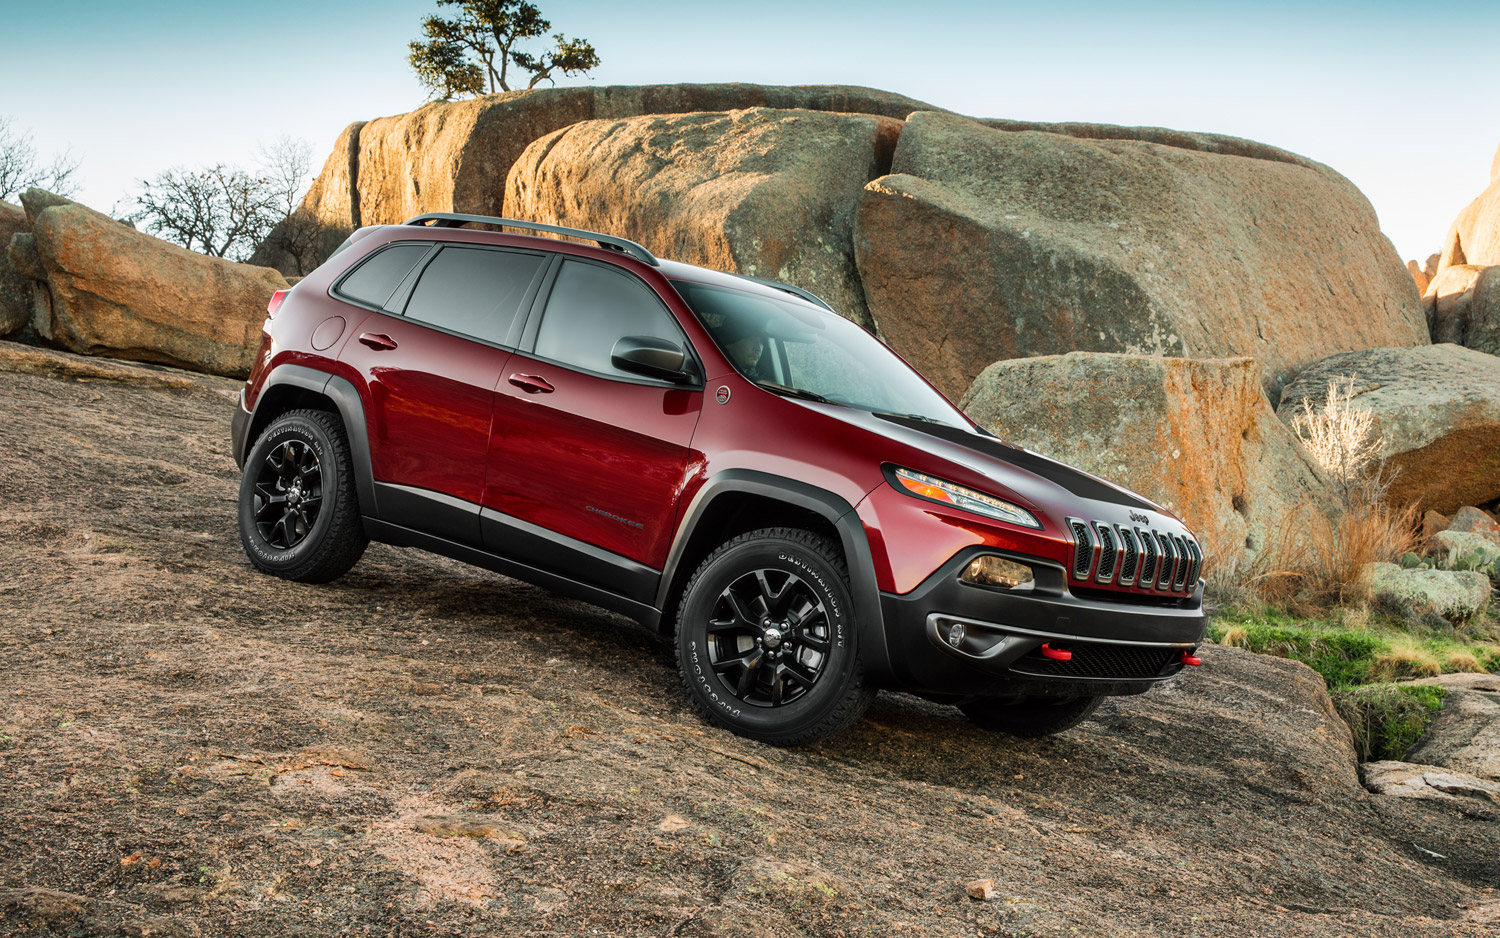 November CUV Sales: Honda CR-V Takes First, Cherokee in Seventh